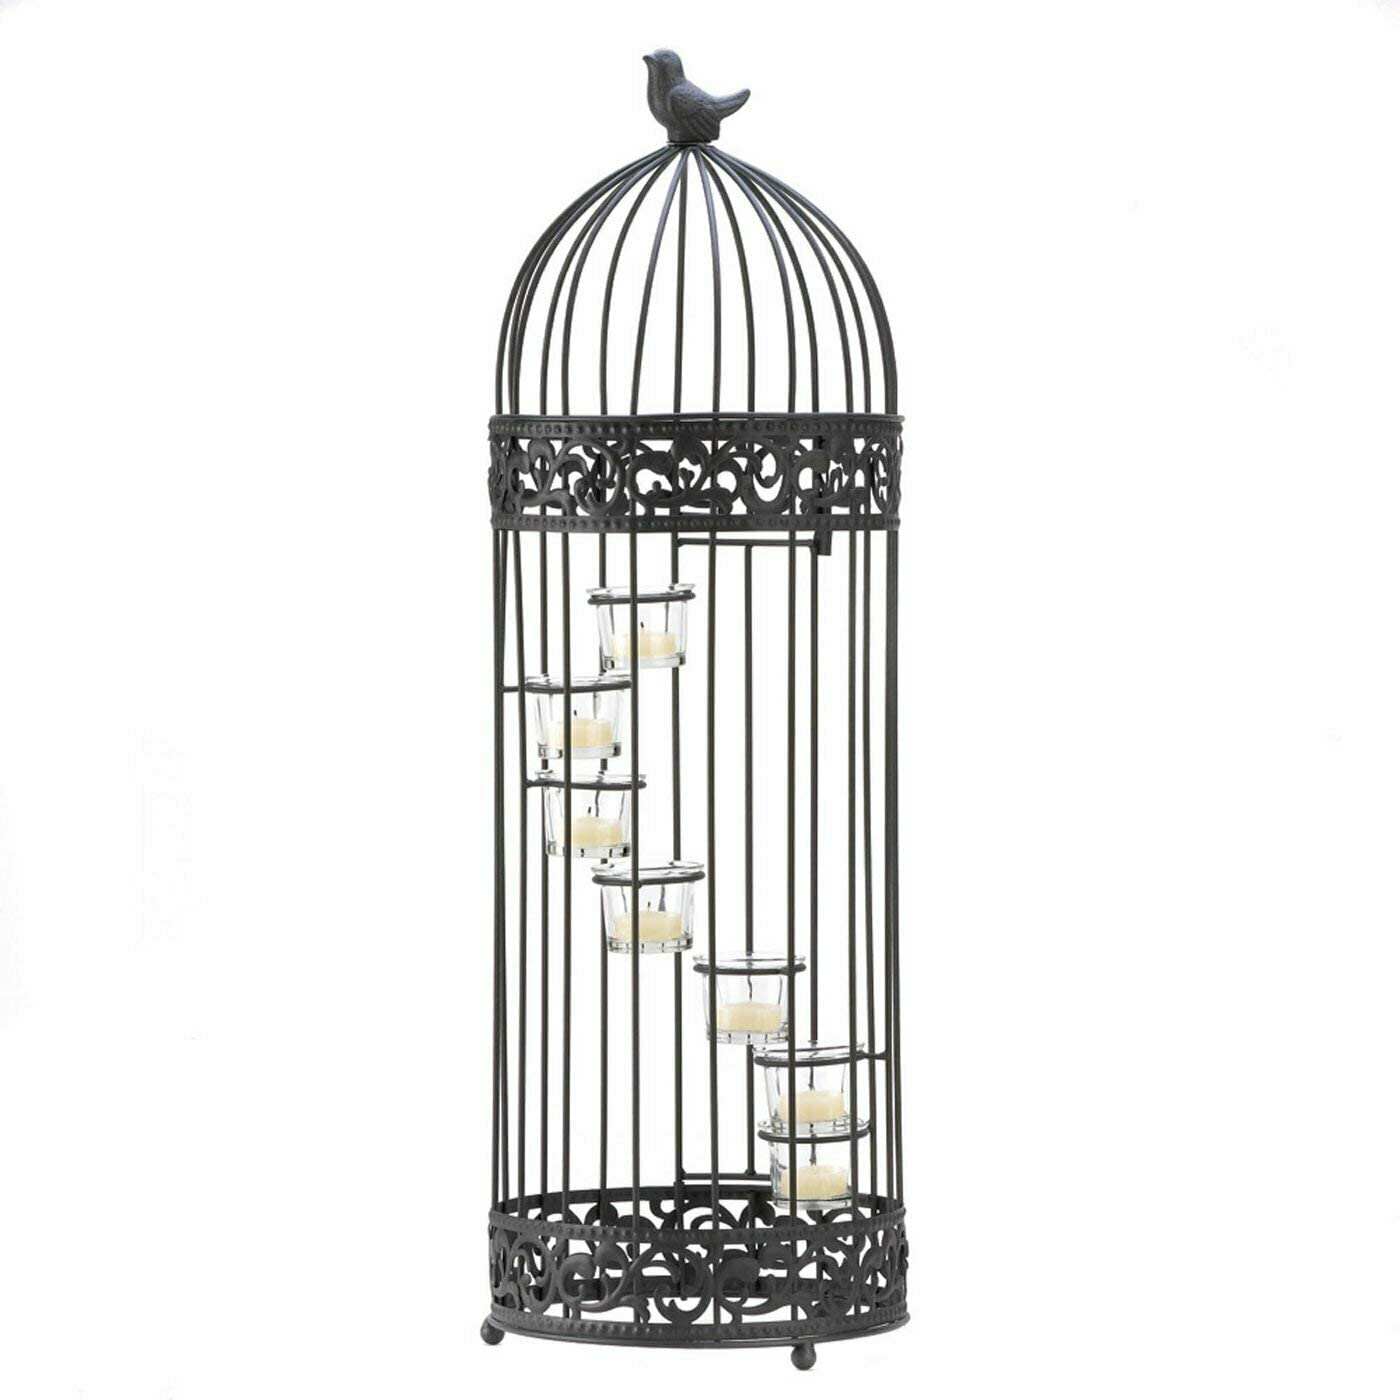 Koehler Home Decor Gift Accent Birdcage Te Max 68% OFF Glass Staircase Metal Financial sales sale